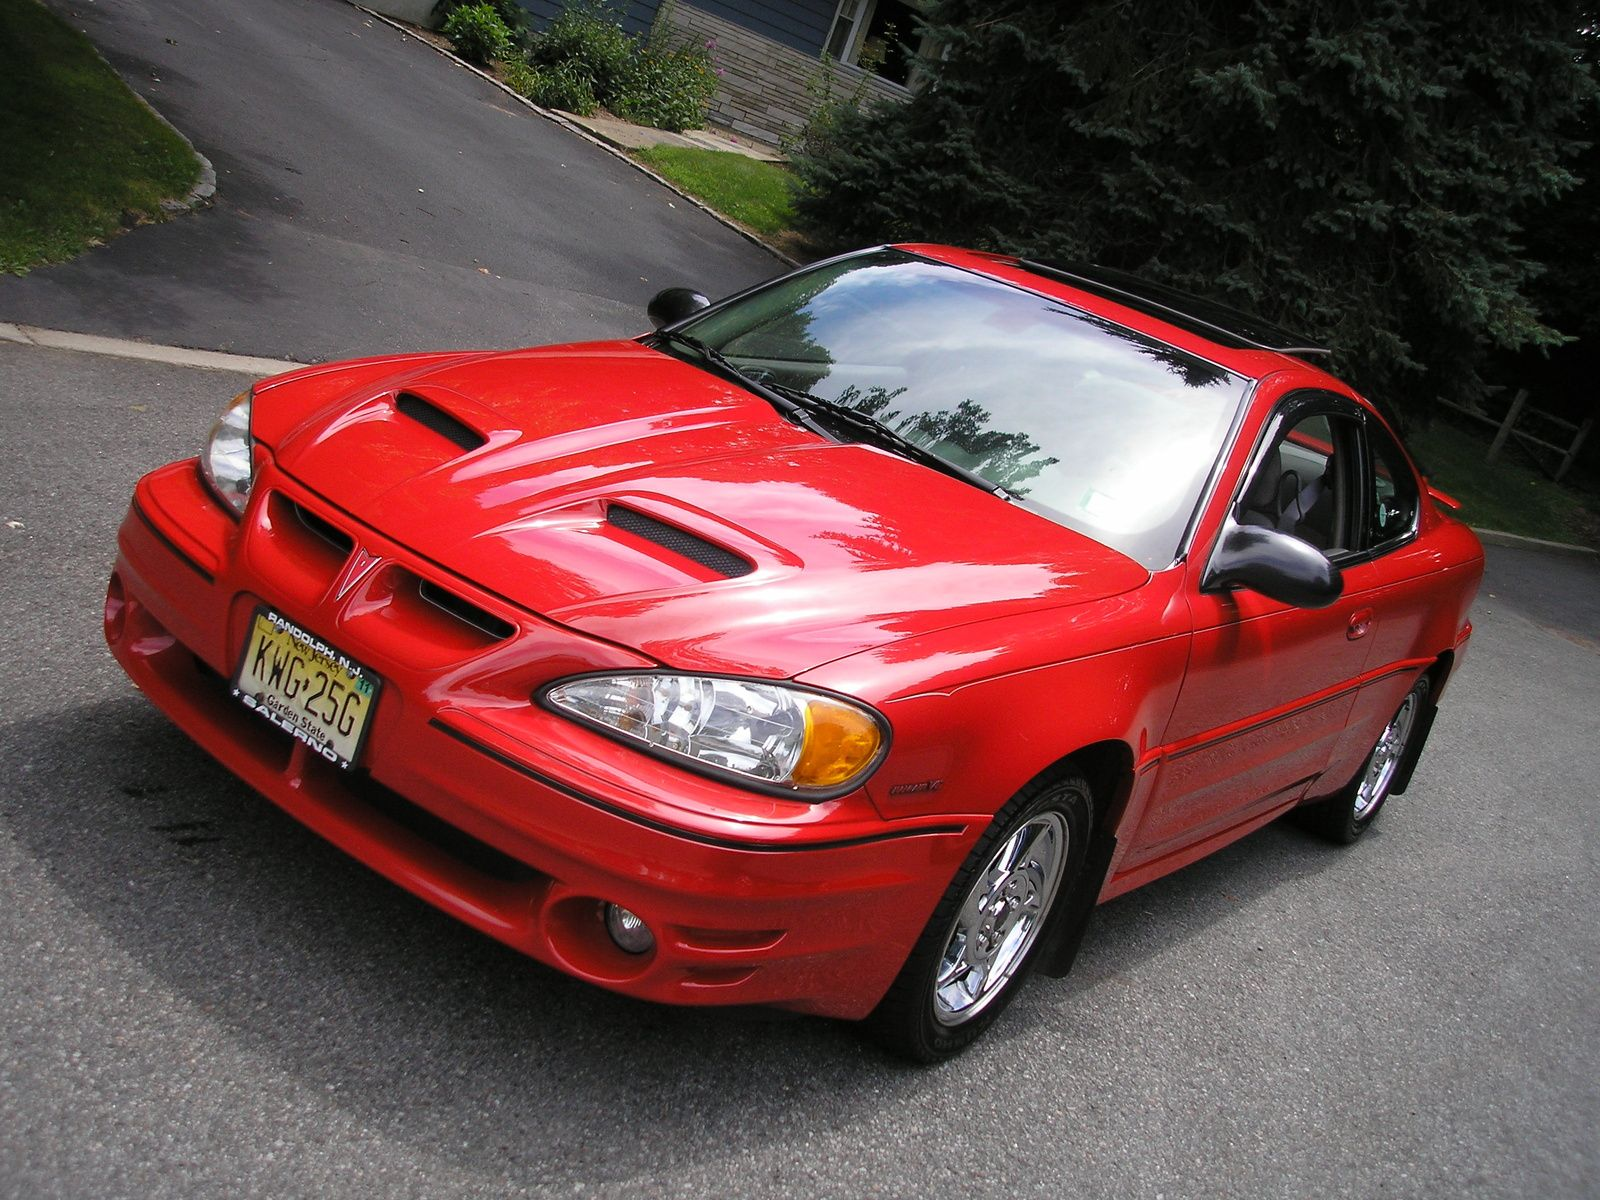 The Pontiac Grand Am Came Closest To Its Car Goals When Furnished With V6 Description From Moibbk I Searched For This On Bing Images